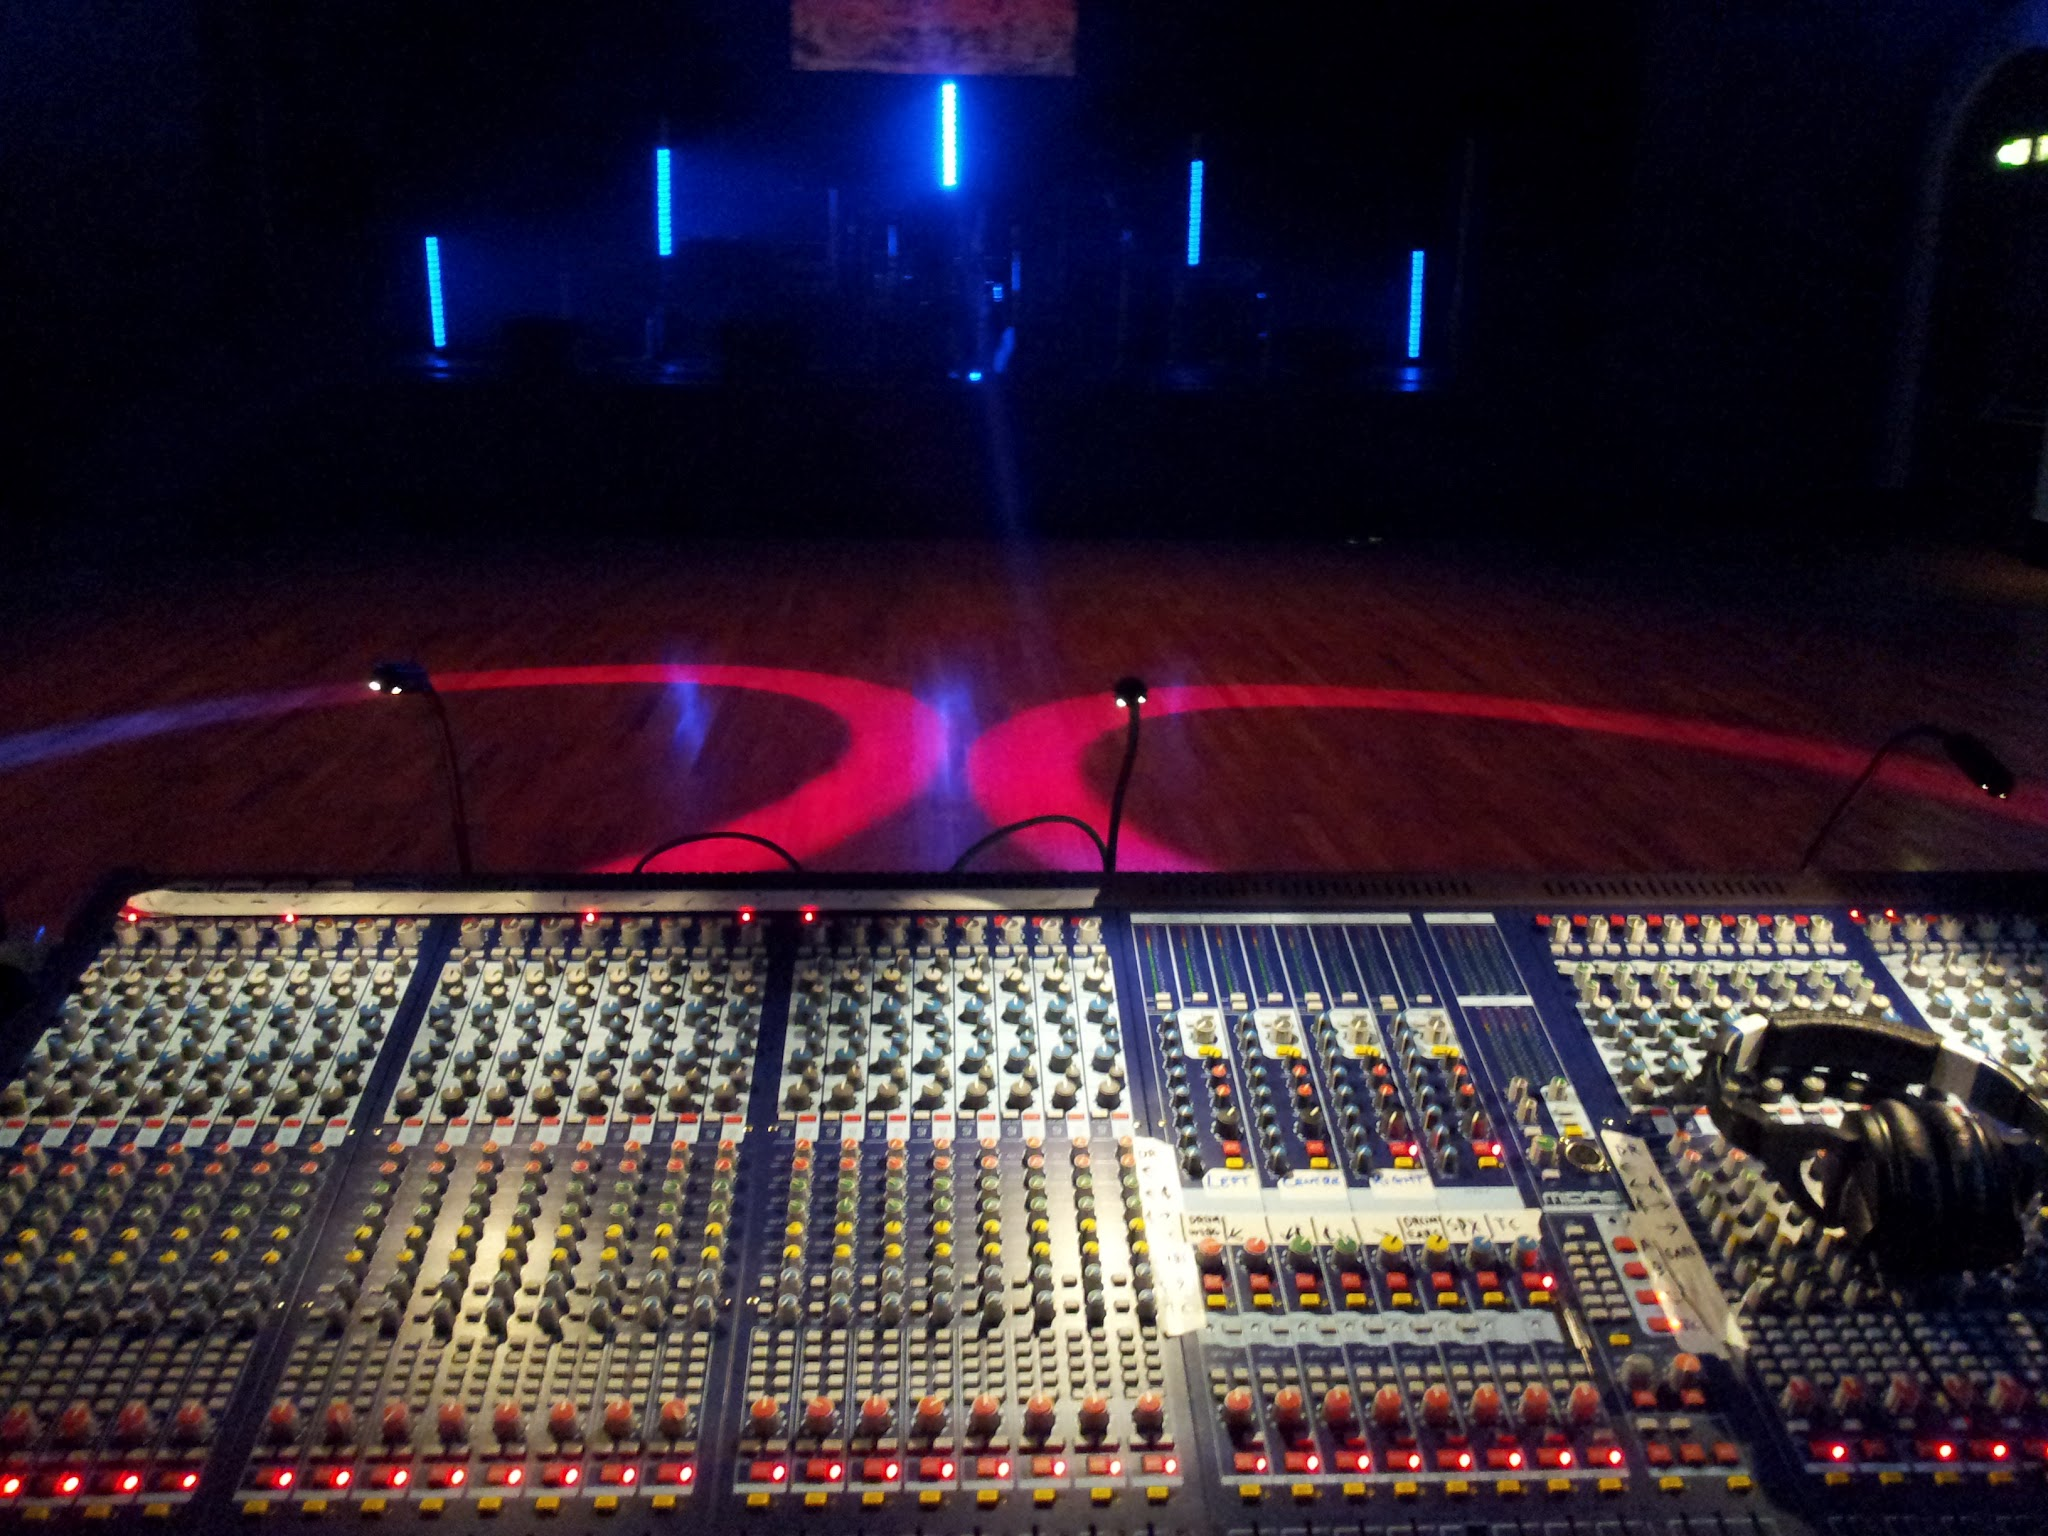 Stage and auditorium in preset lighting with te sound desk in view